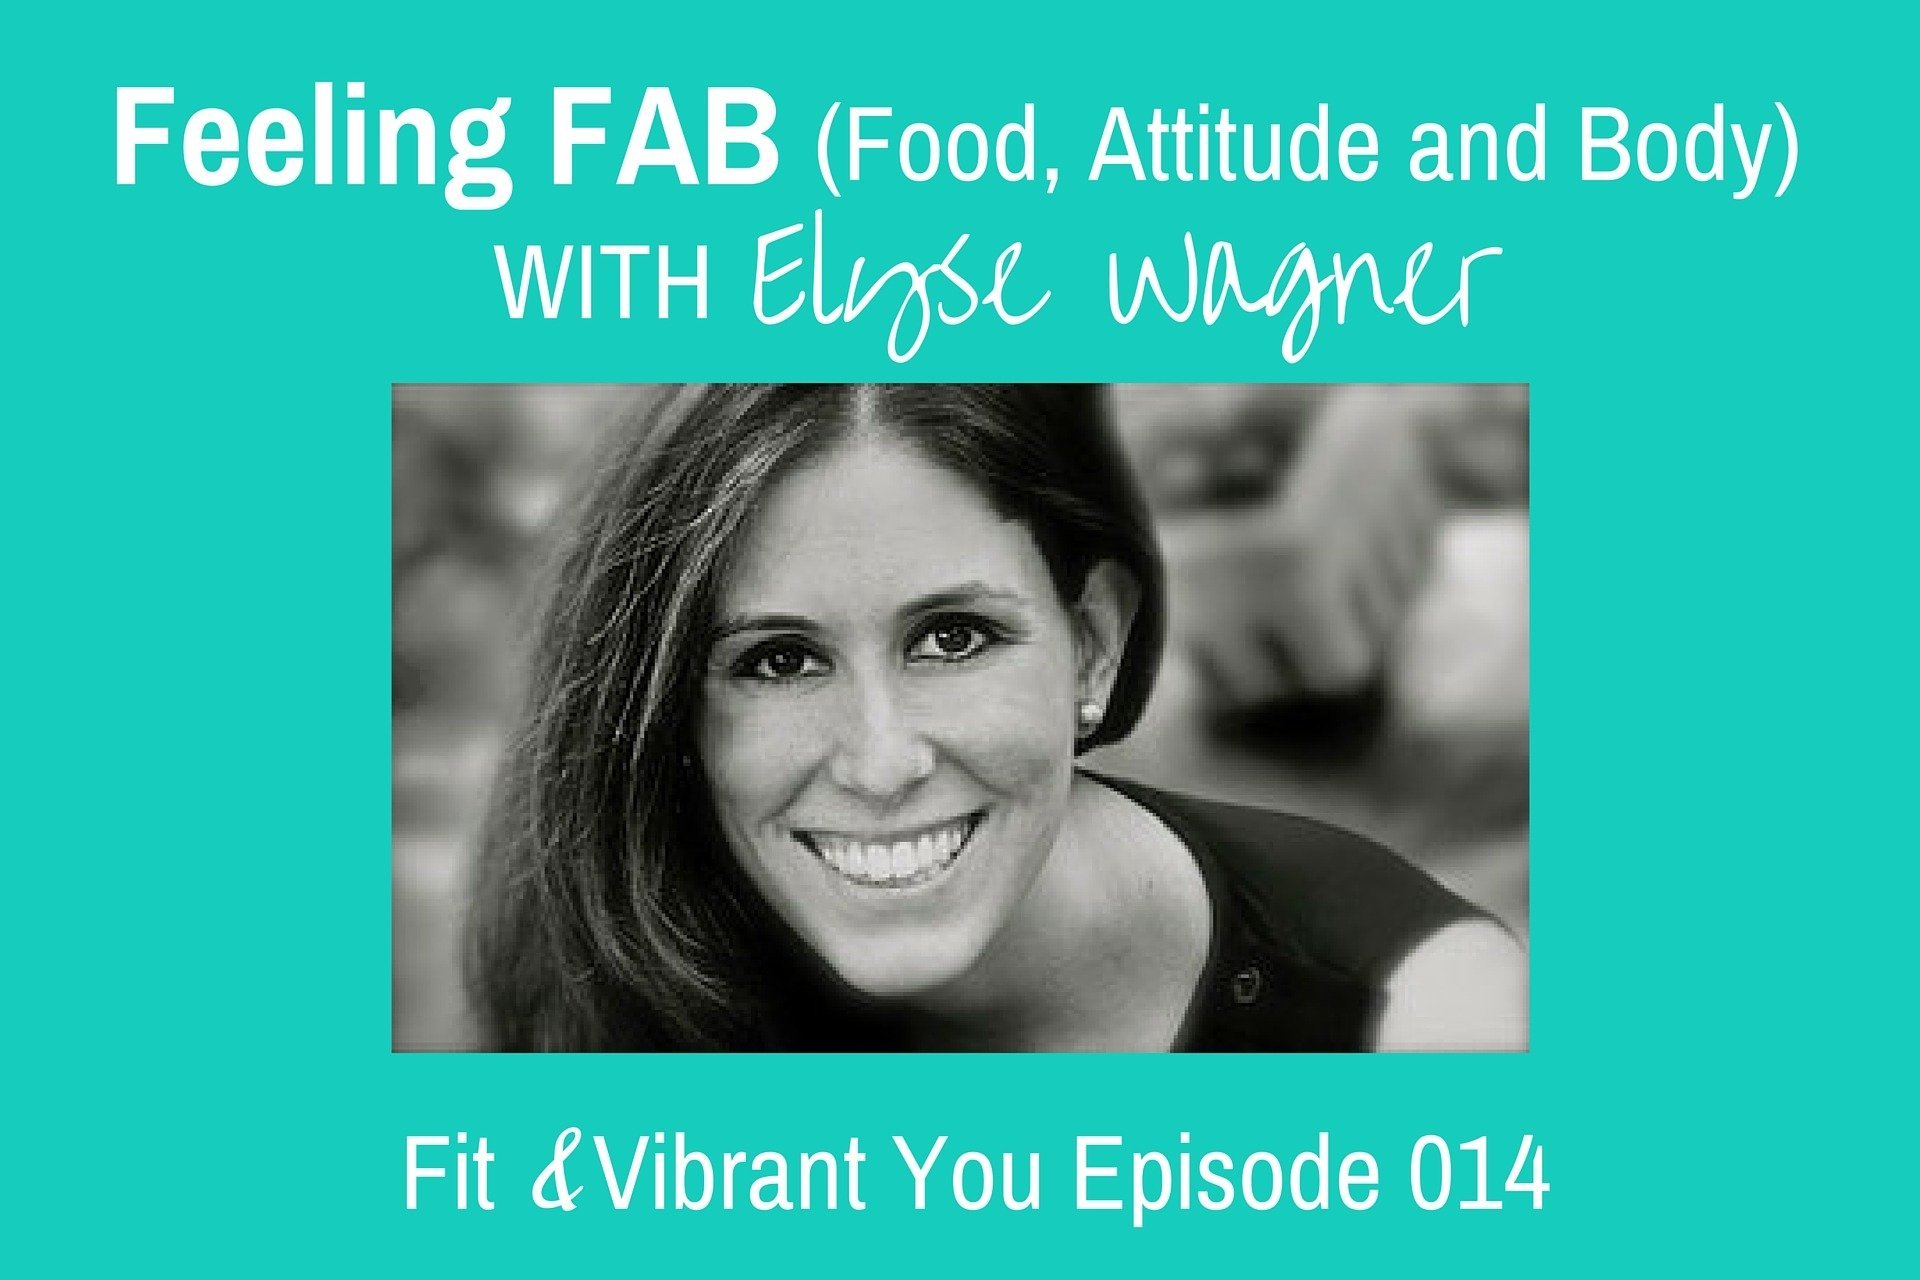 FVY 014: Feeling FAB with Elyse Wagner